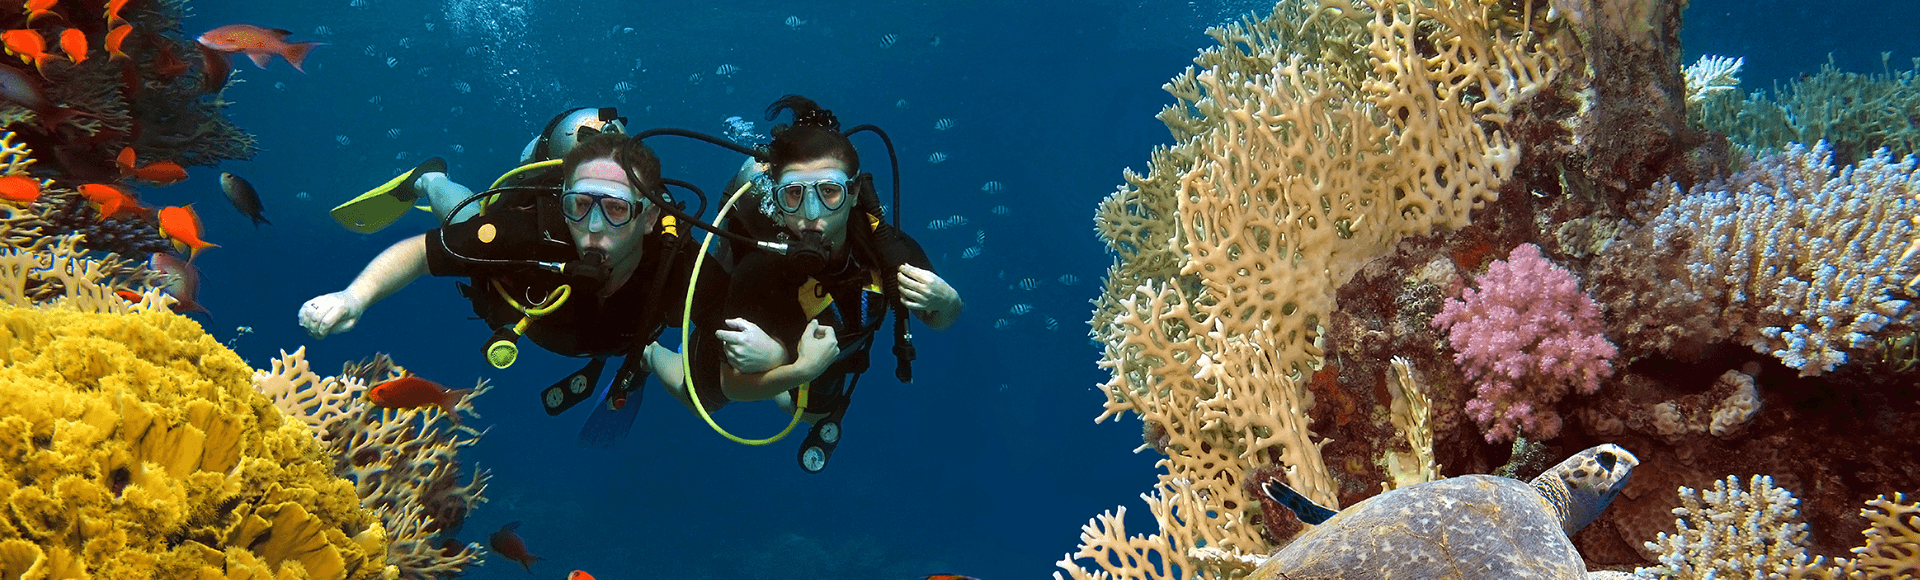 Couple diving buddy diving among coral and fish in the ocean